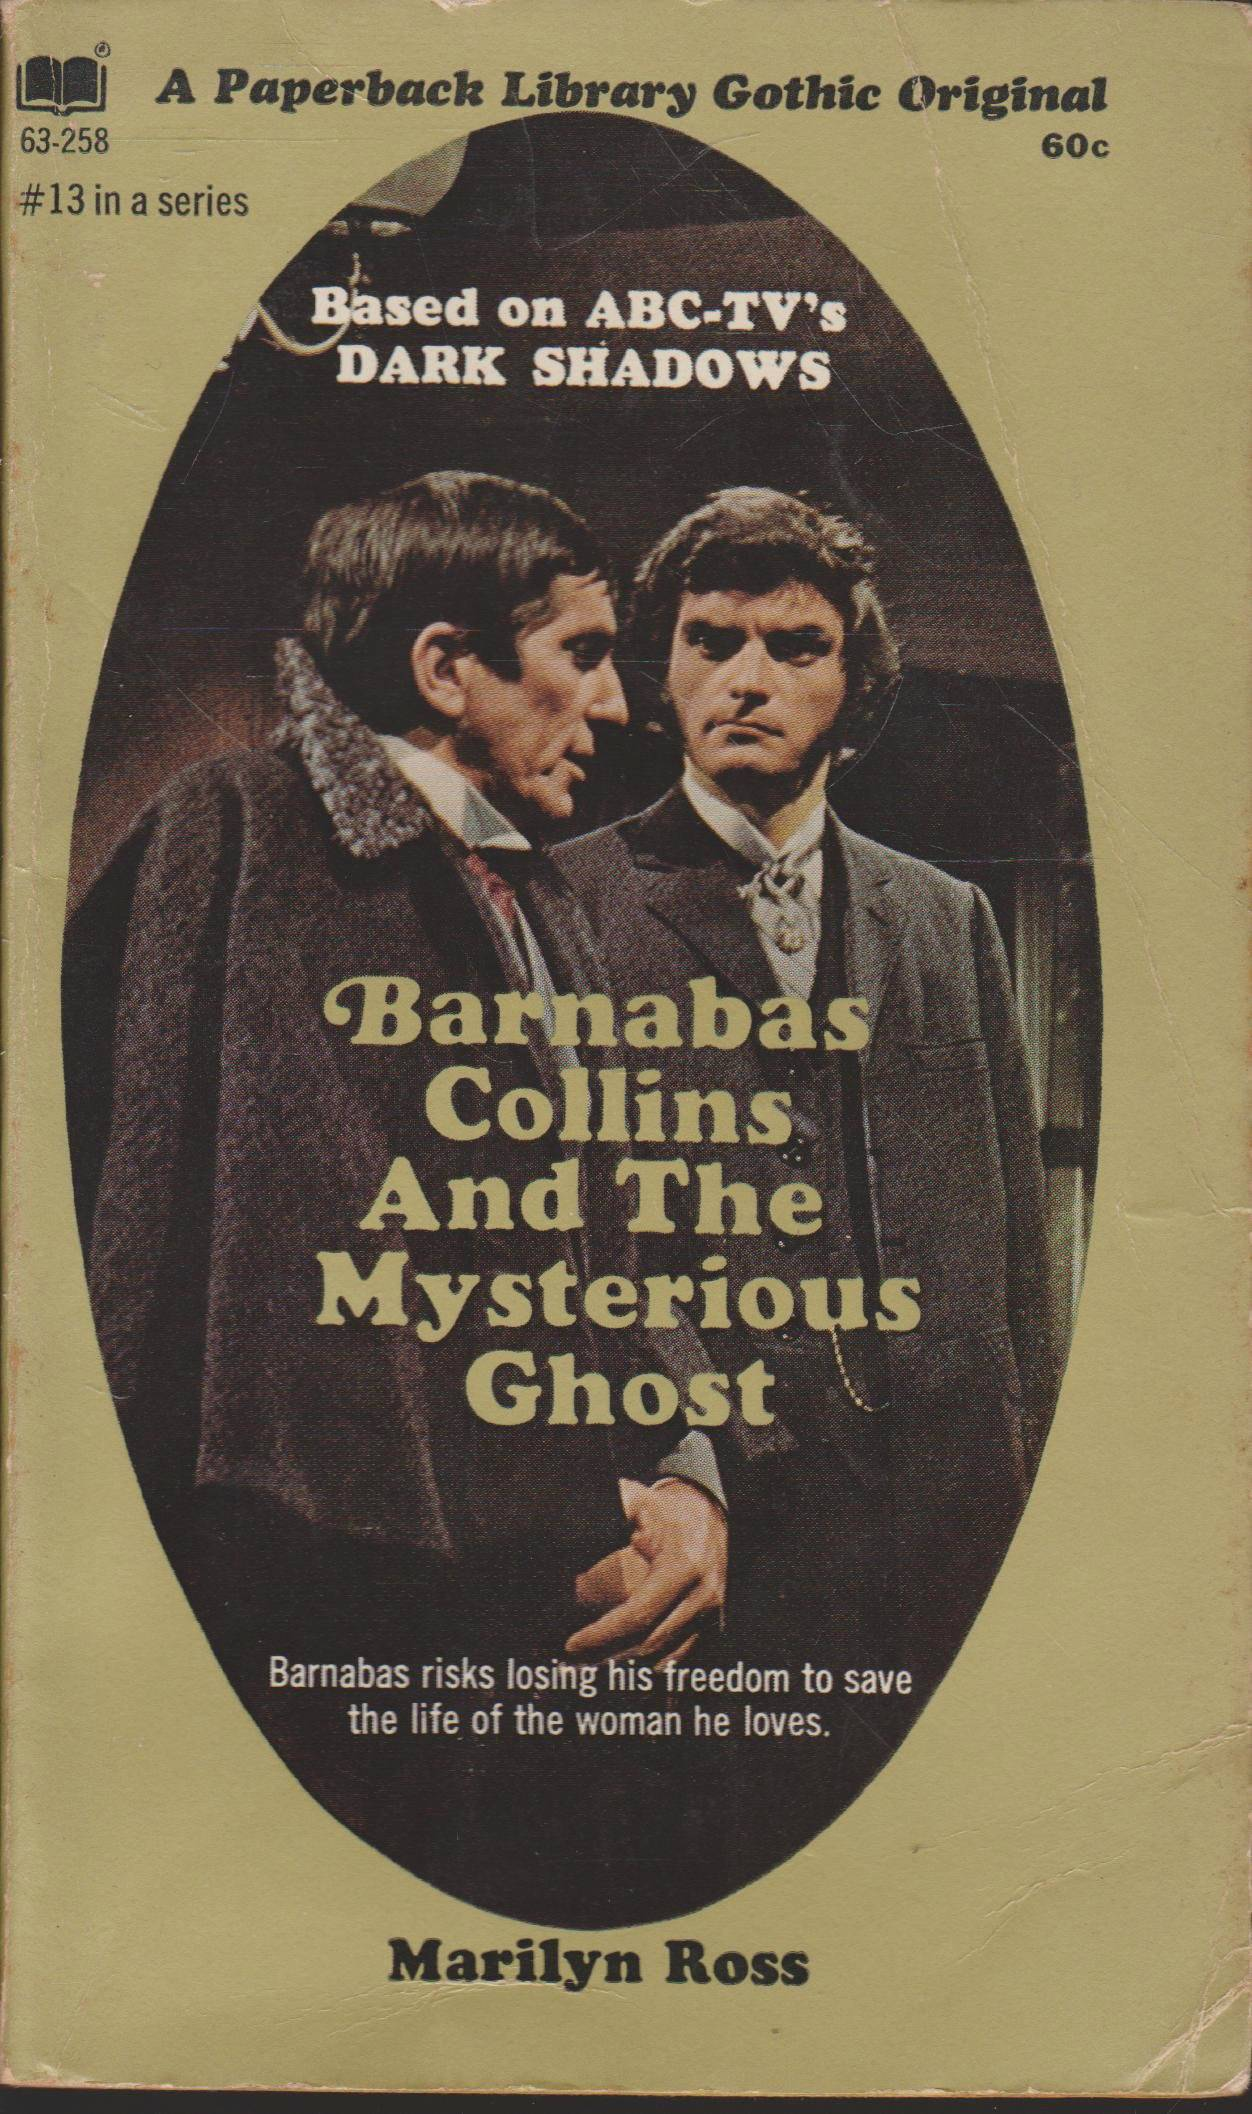 DARK SHADOWS PAPERBACK LIBRARY NOVEL 13 MYSTERIOUS GHOST